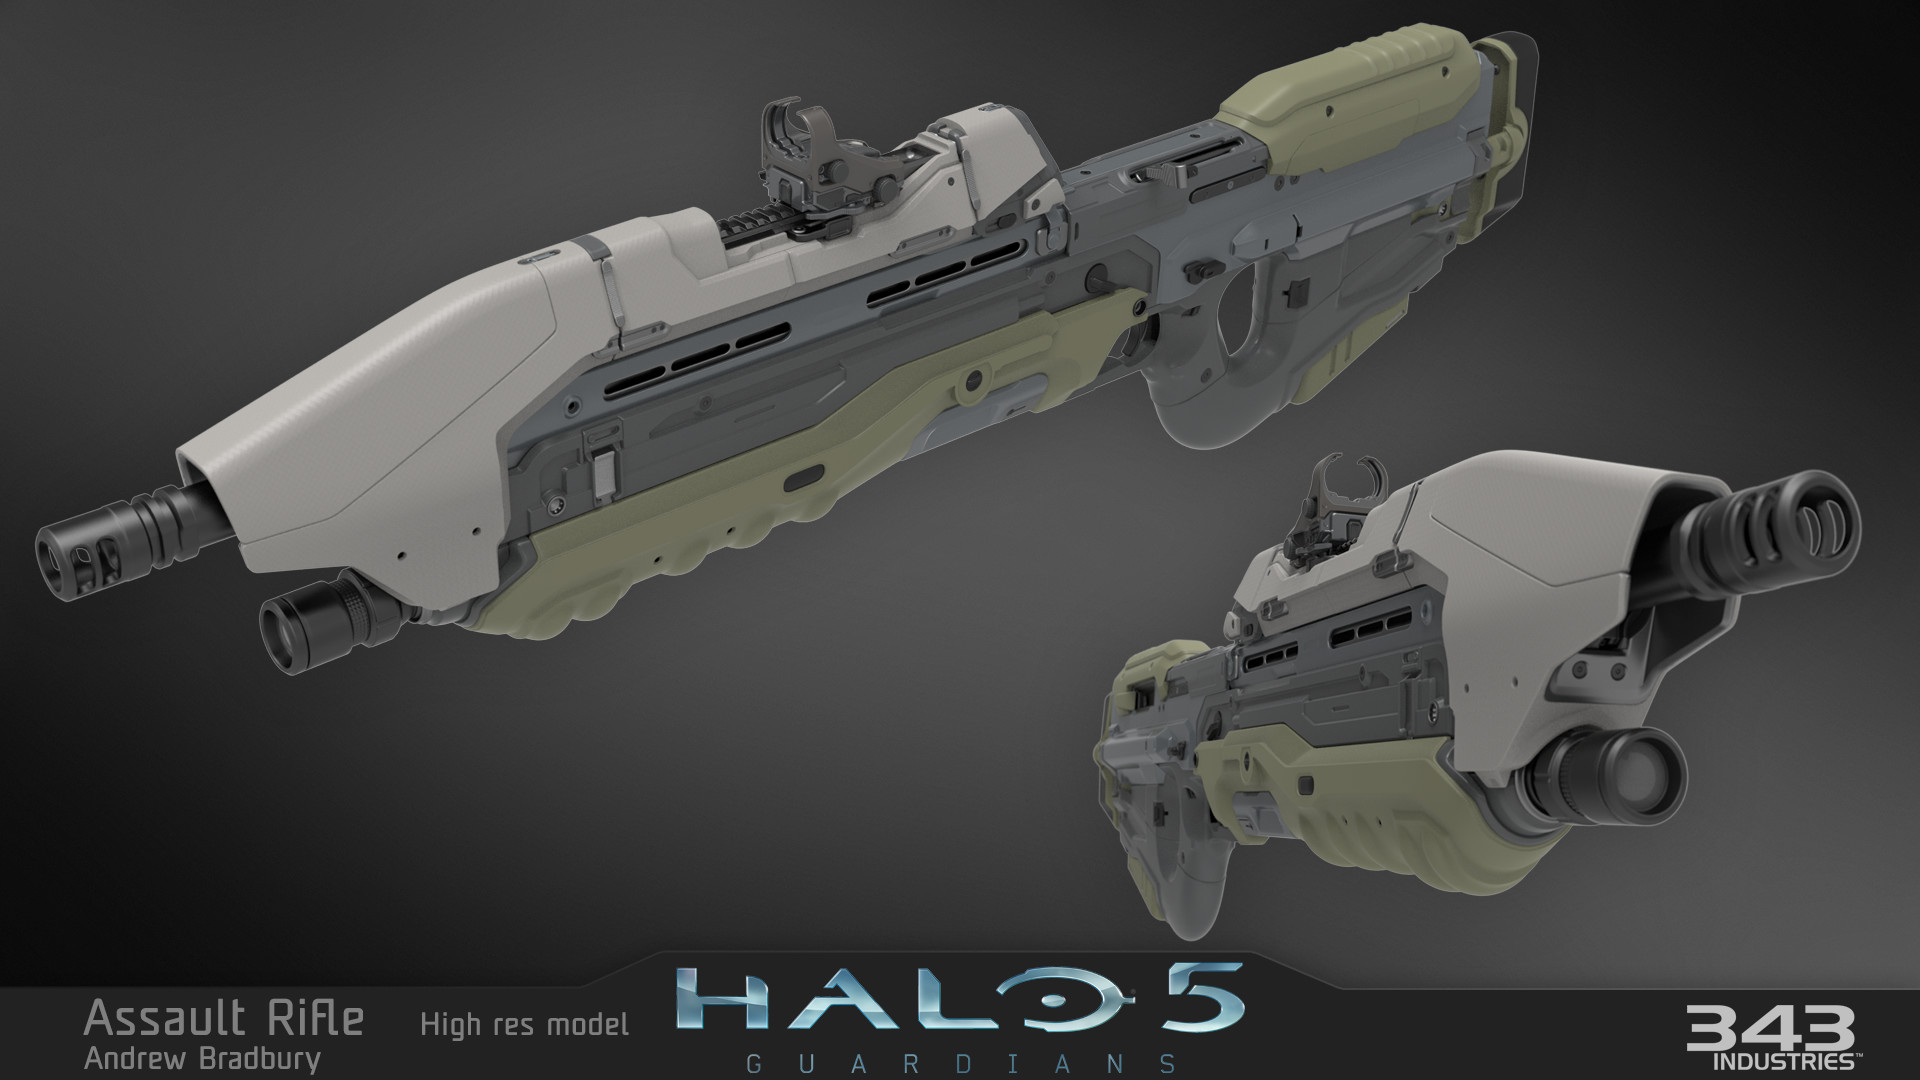 ArtStation - Halo 5 Assault Rifle, Andrew Bradbury